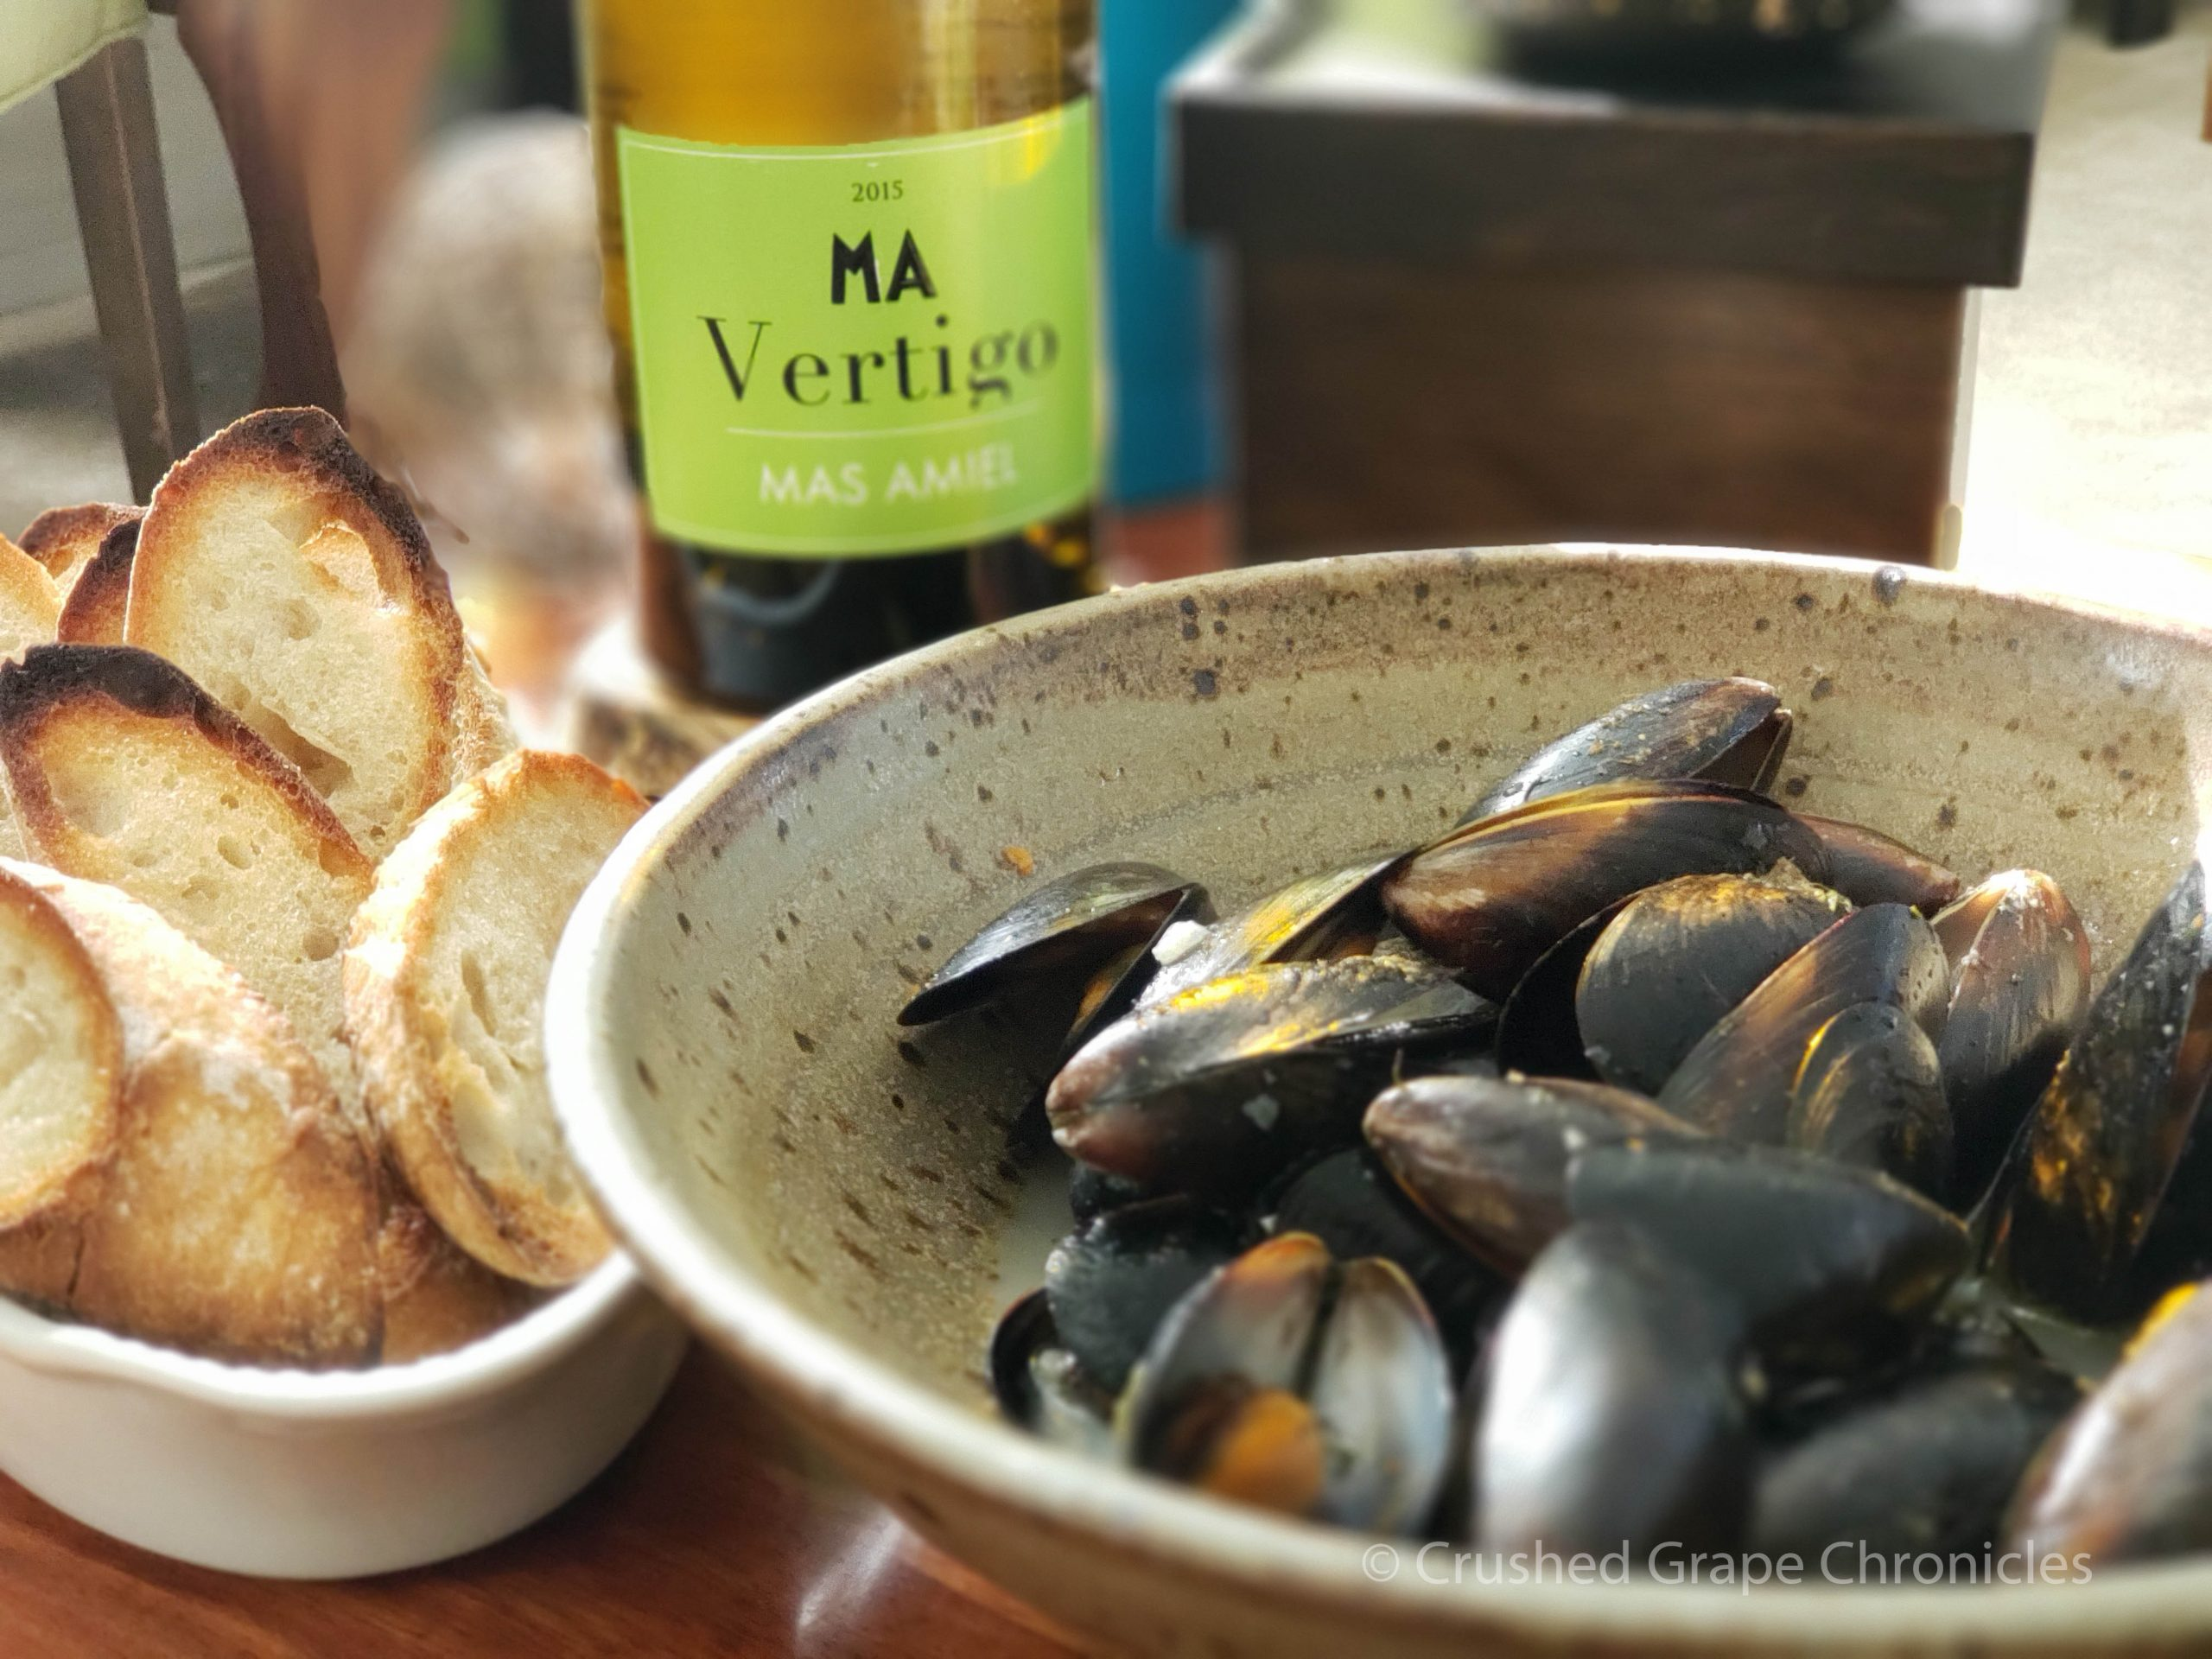 White Roussillon (Mas Amiel Vertigo Blanc) with mussels and crusty bread.